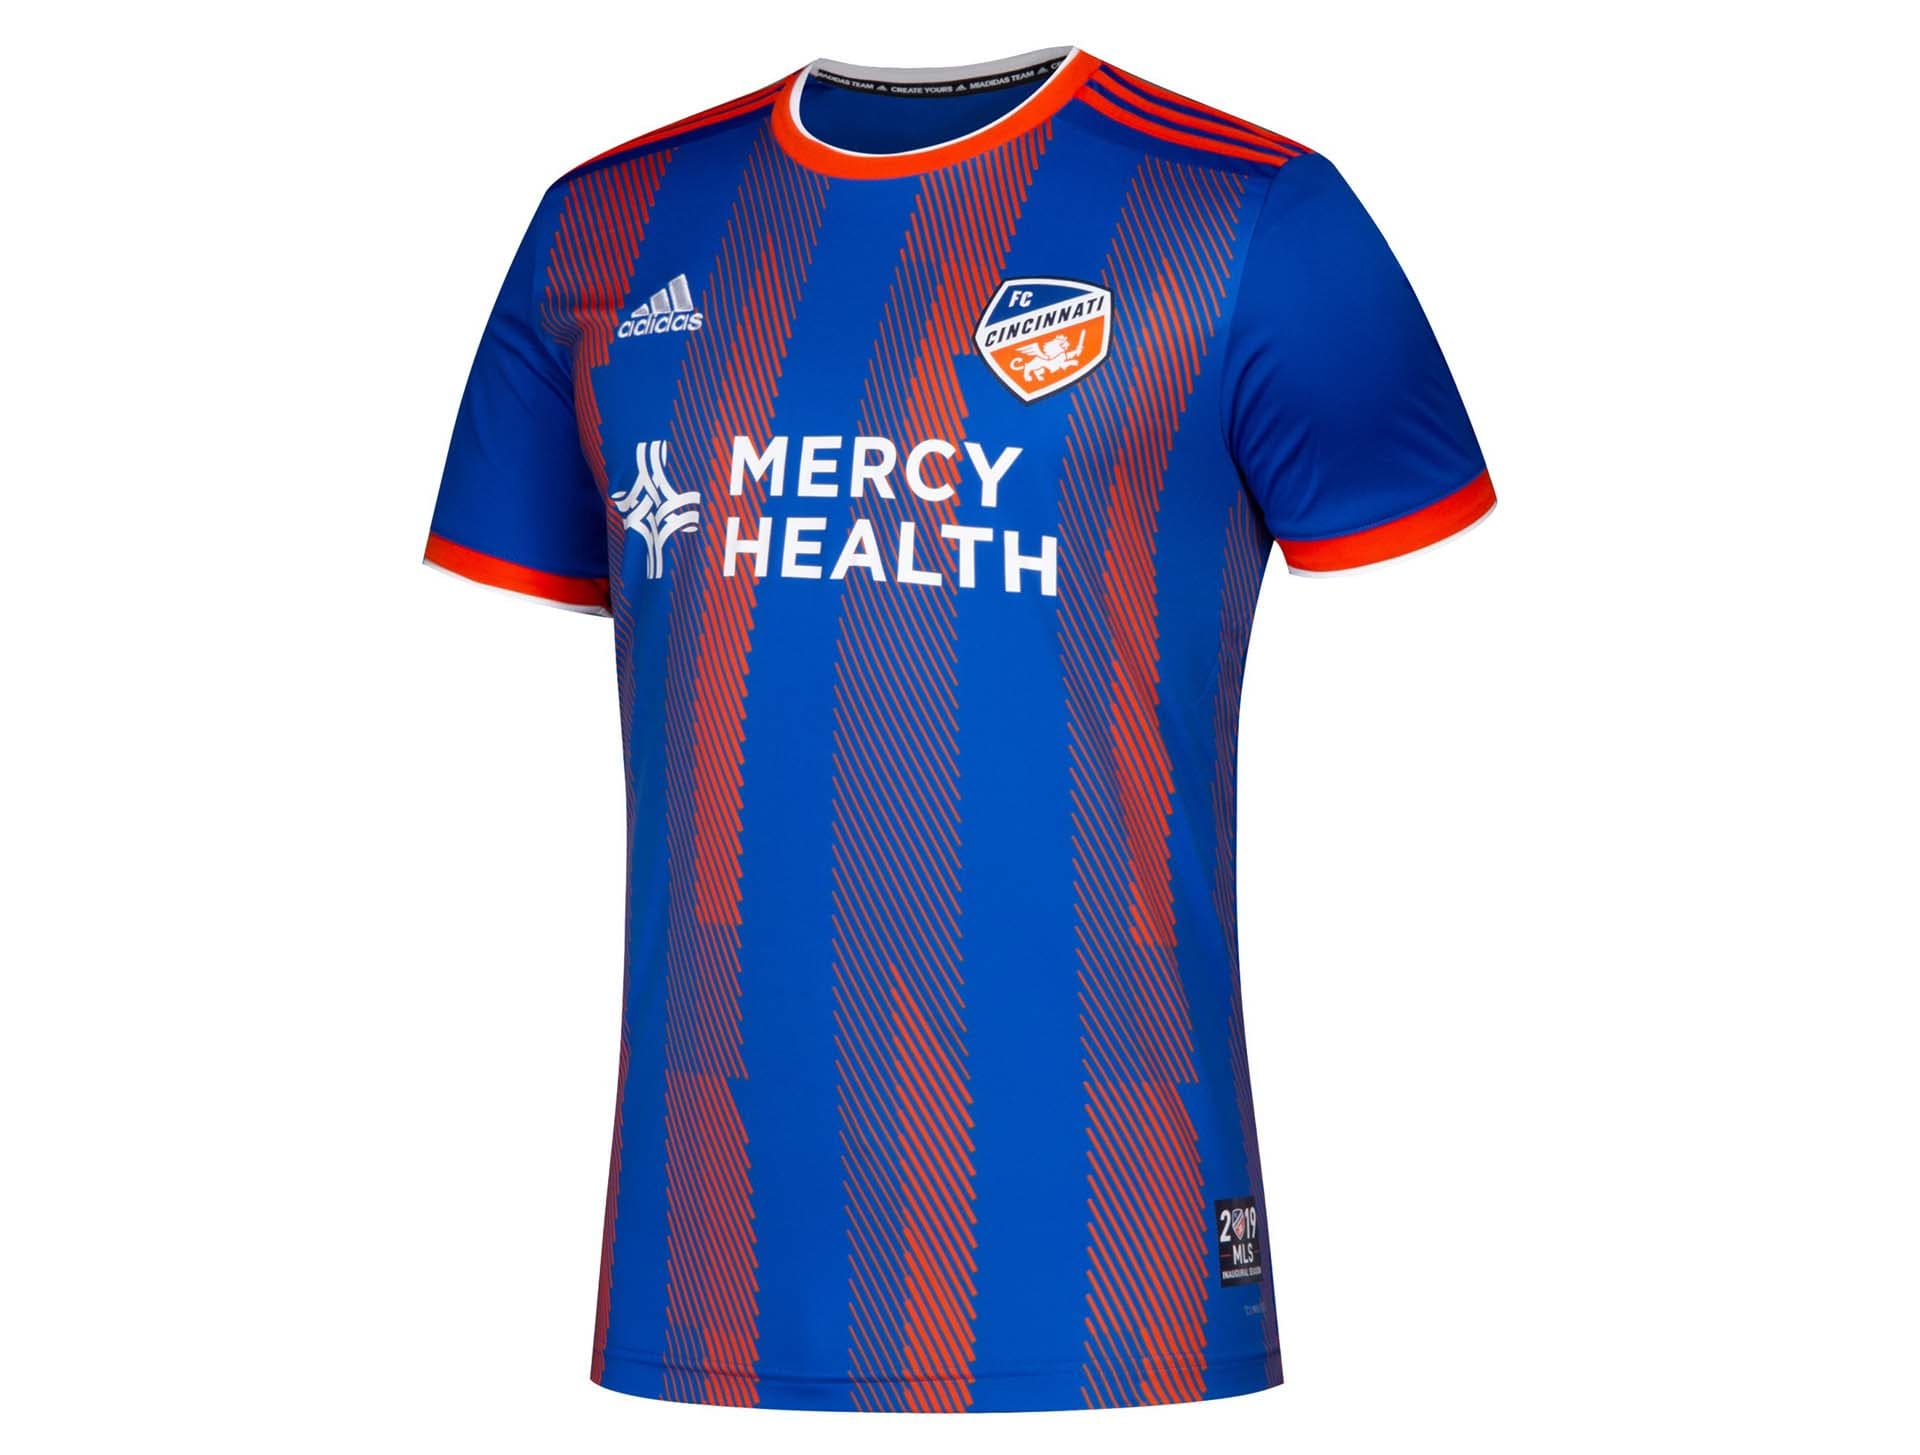 62f986987 A Look At Every 2019 MLS Kit - SoccerBible